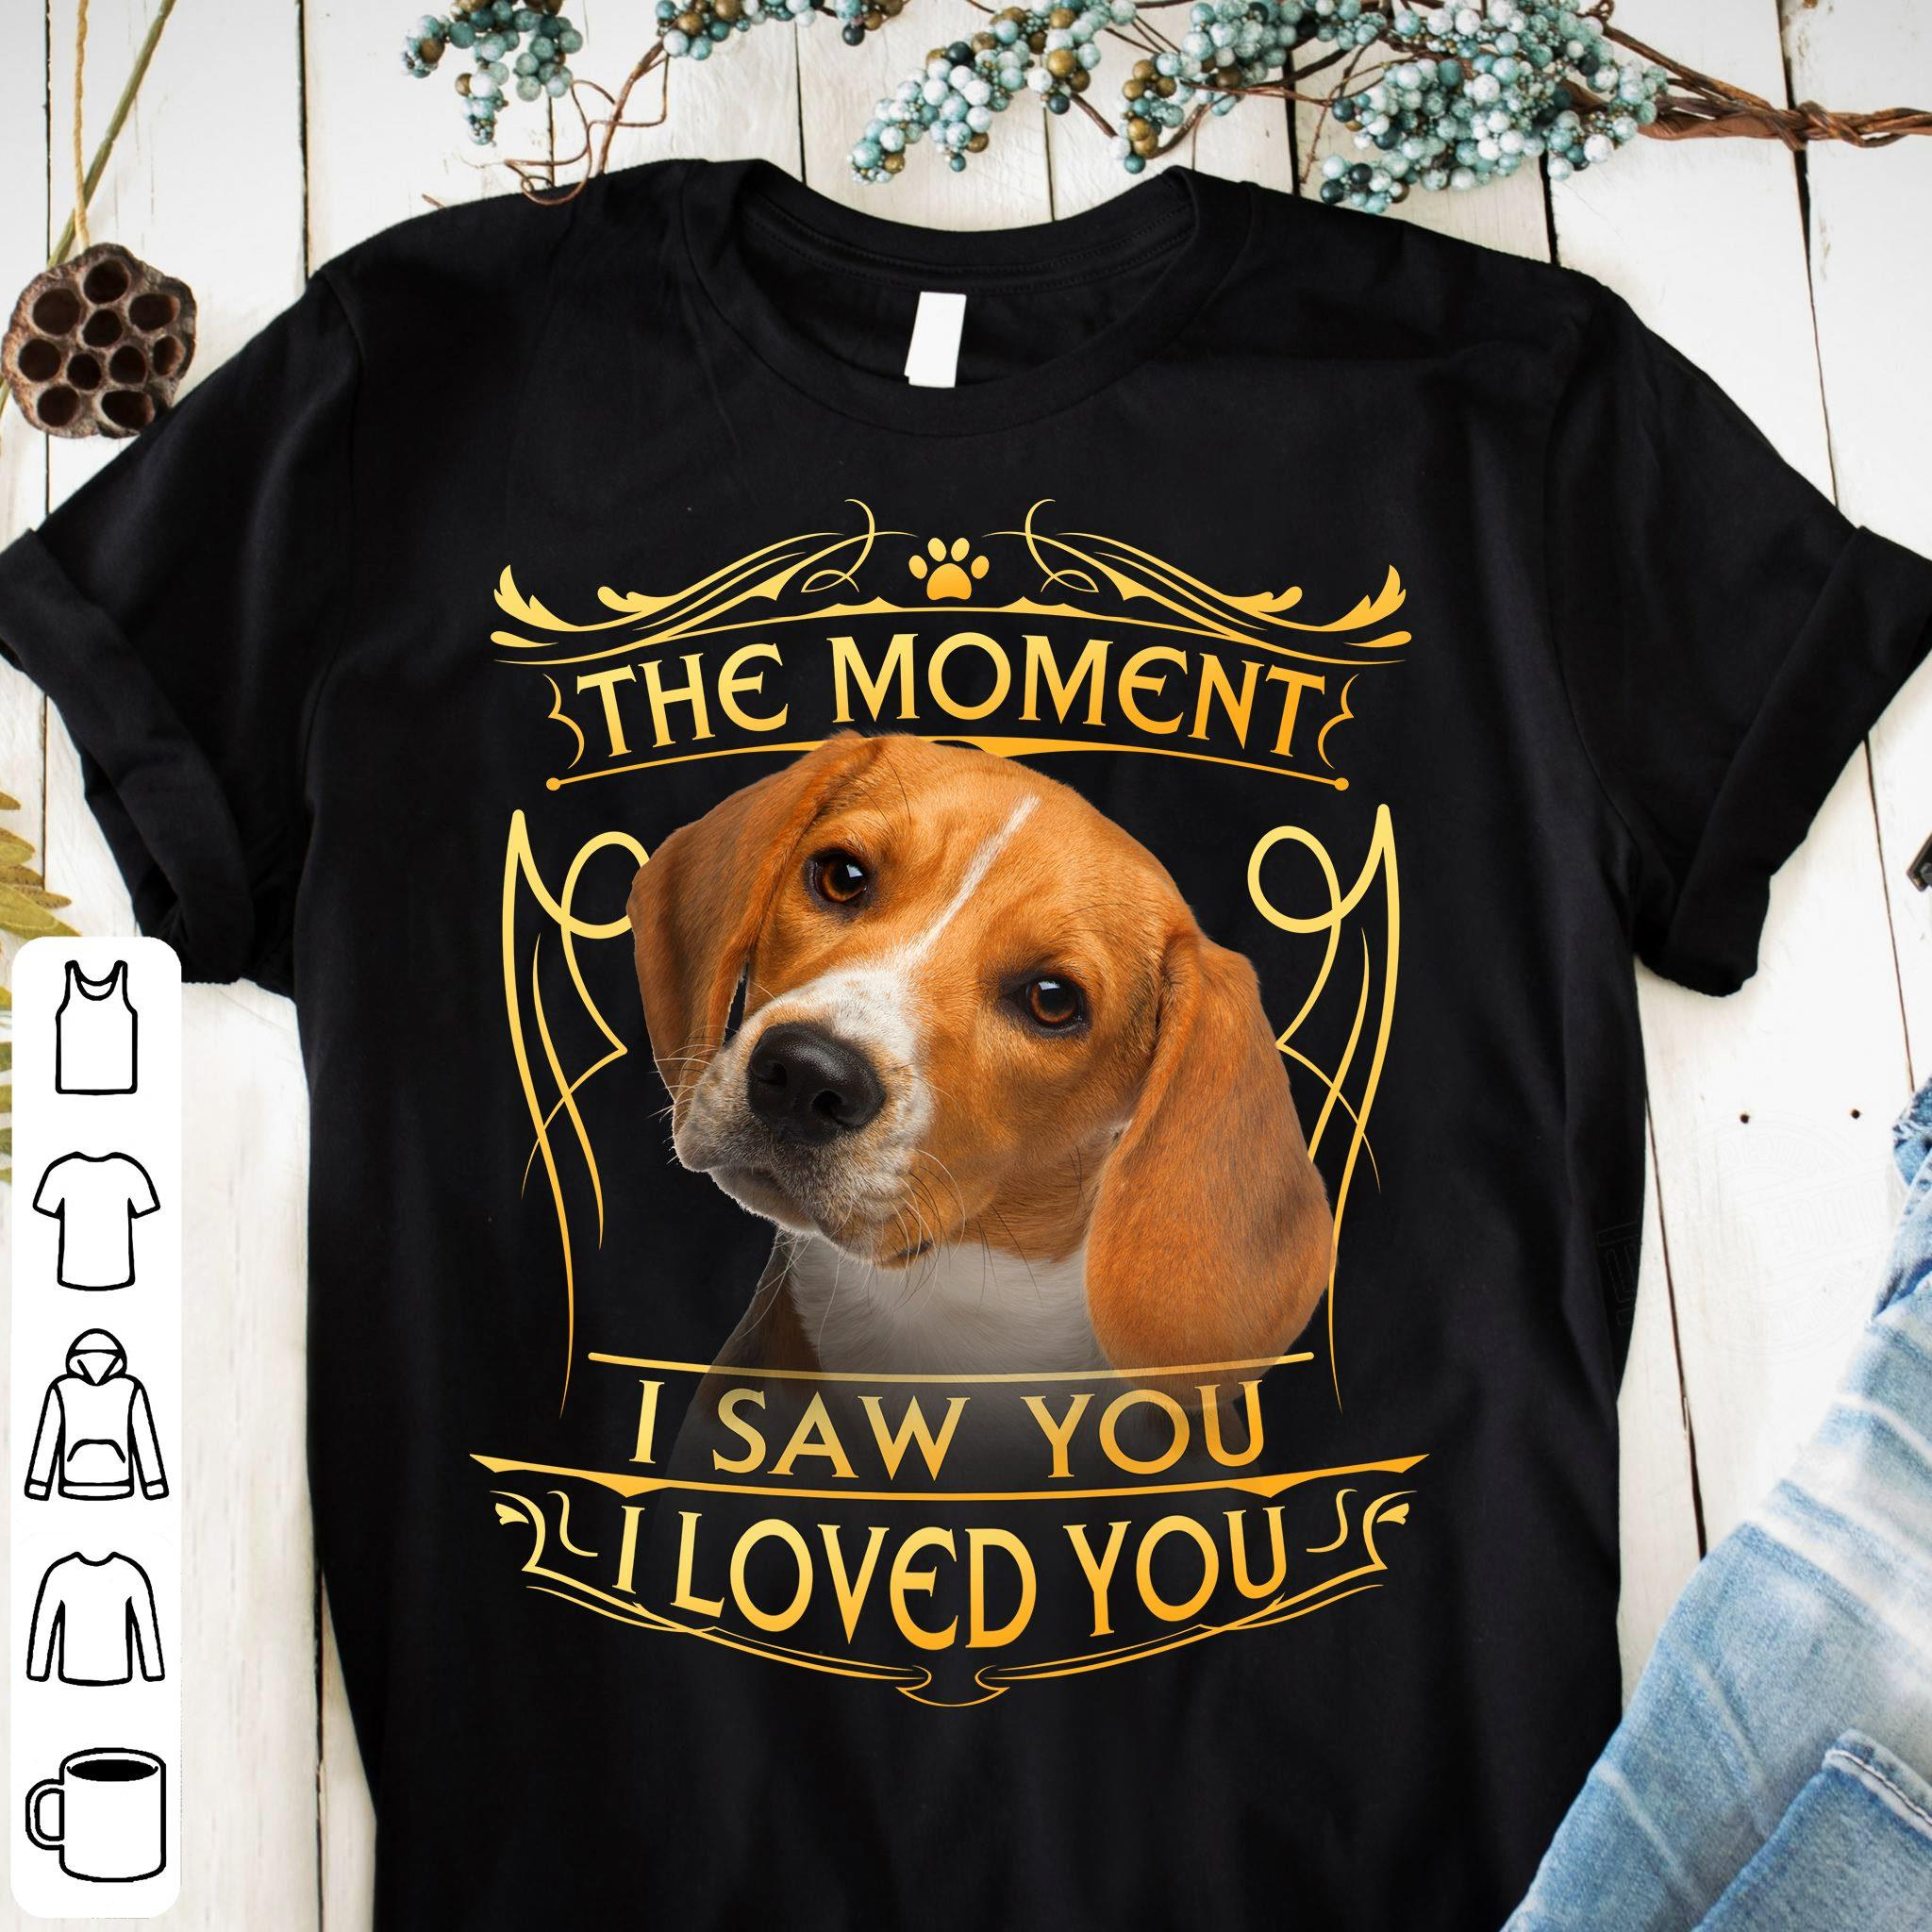 The Moment I Saw You I Loved You Shirt